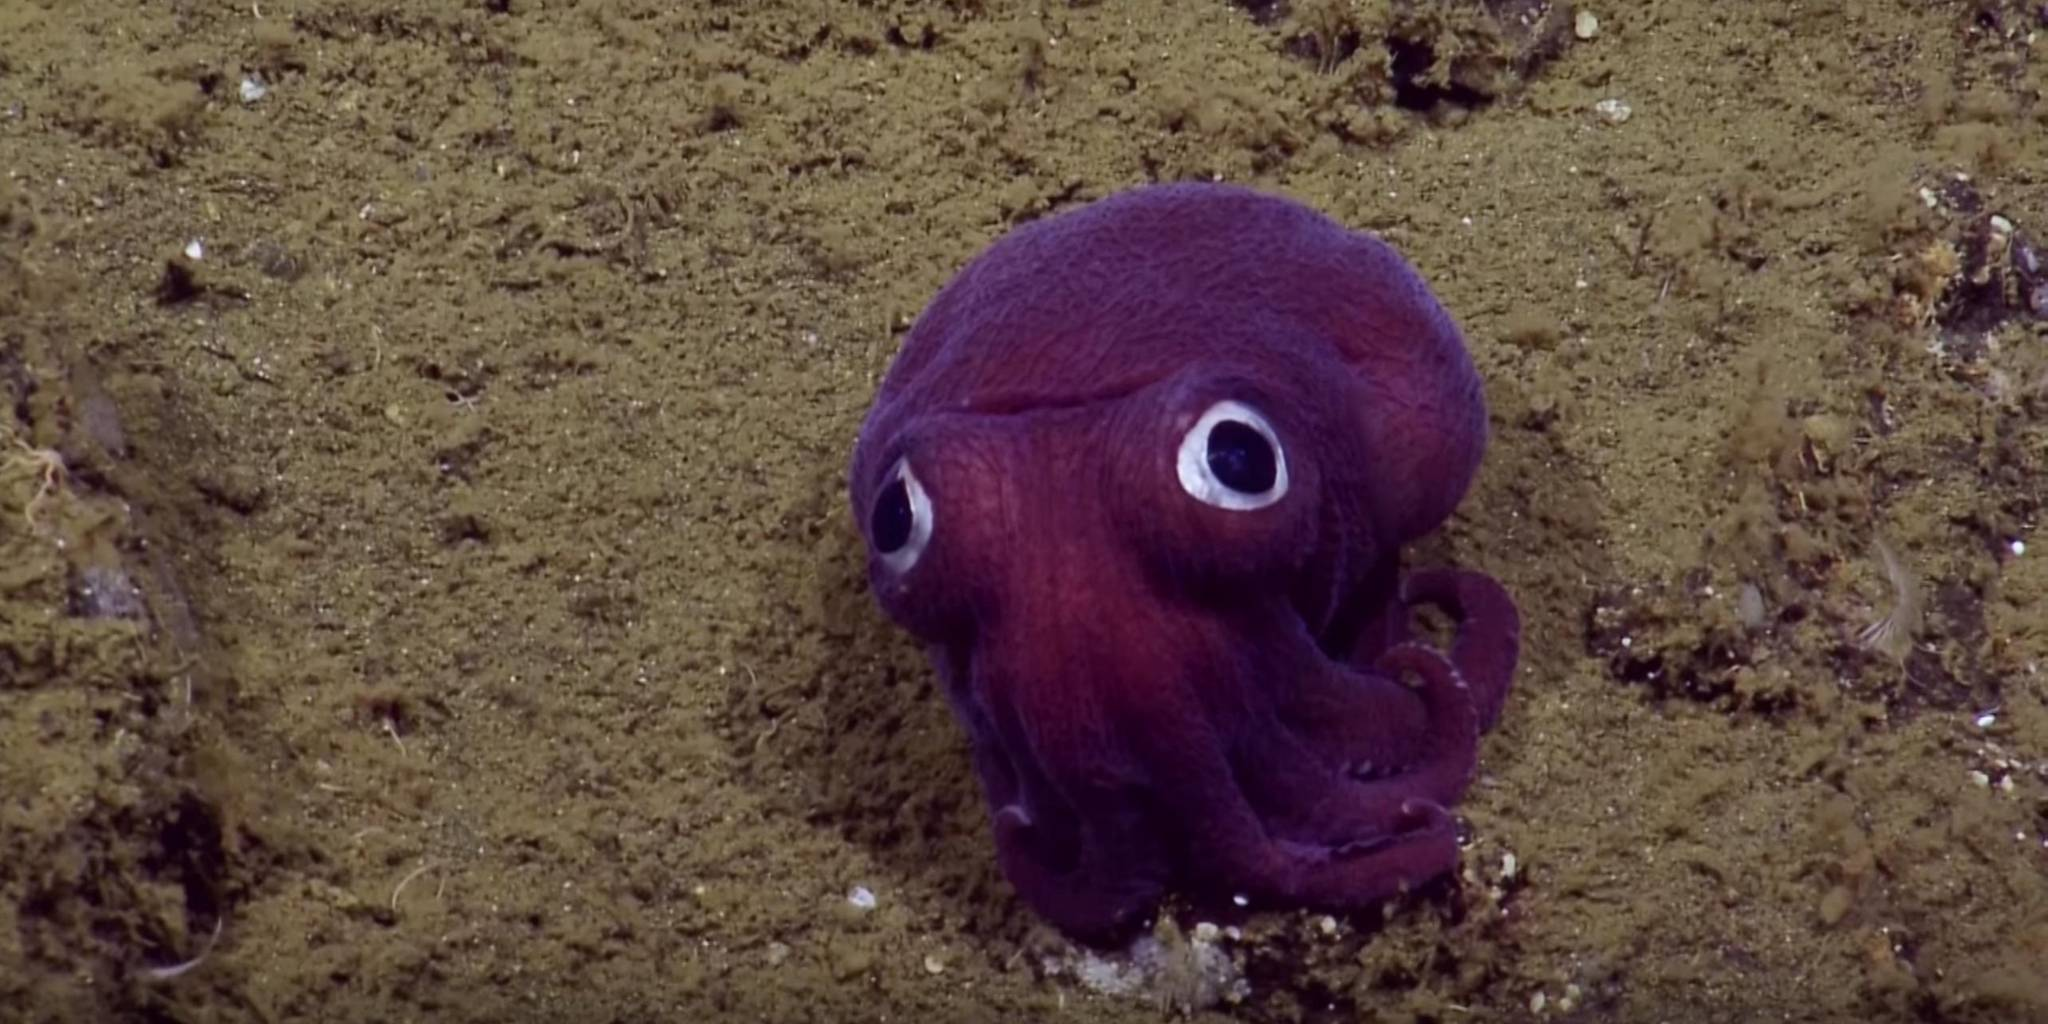 Cuddly, terrifying googly-eyed stubby squid sees you for who you really are